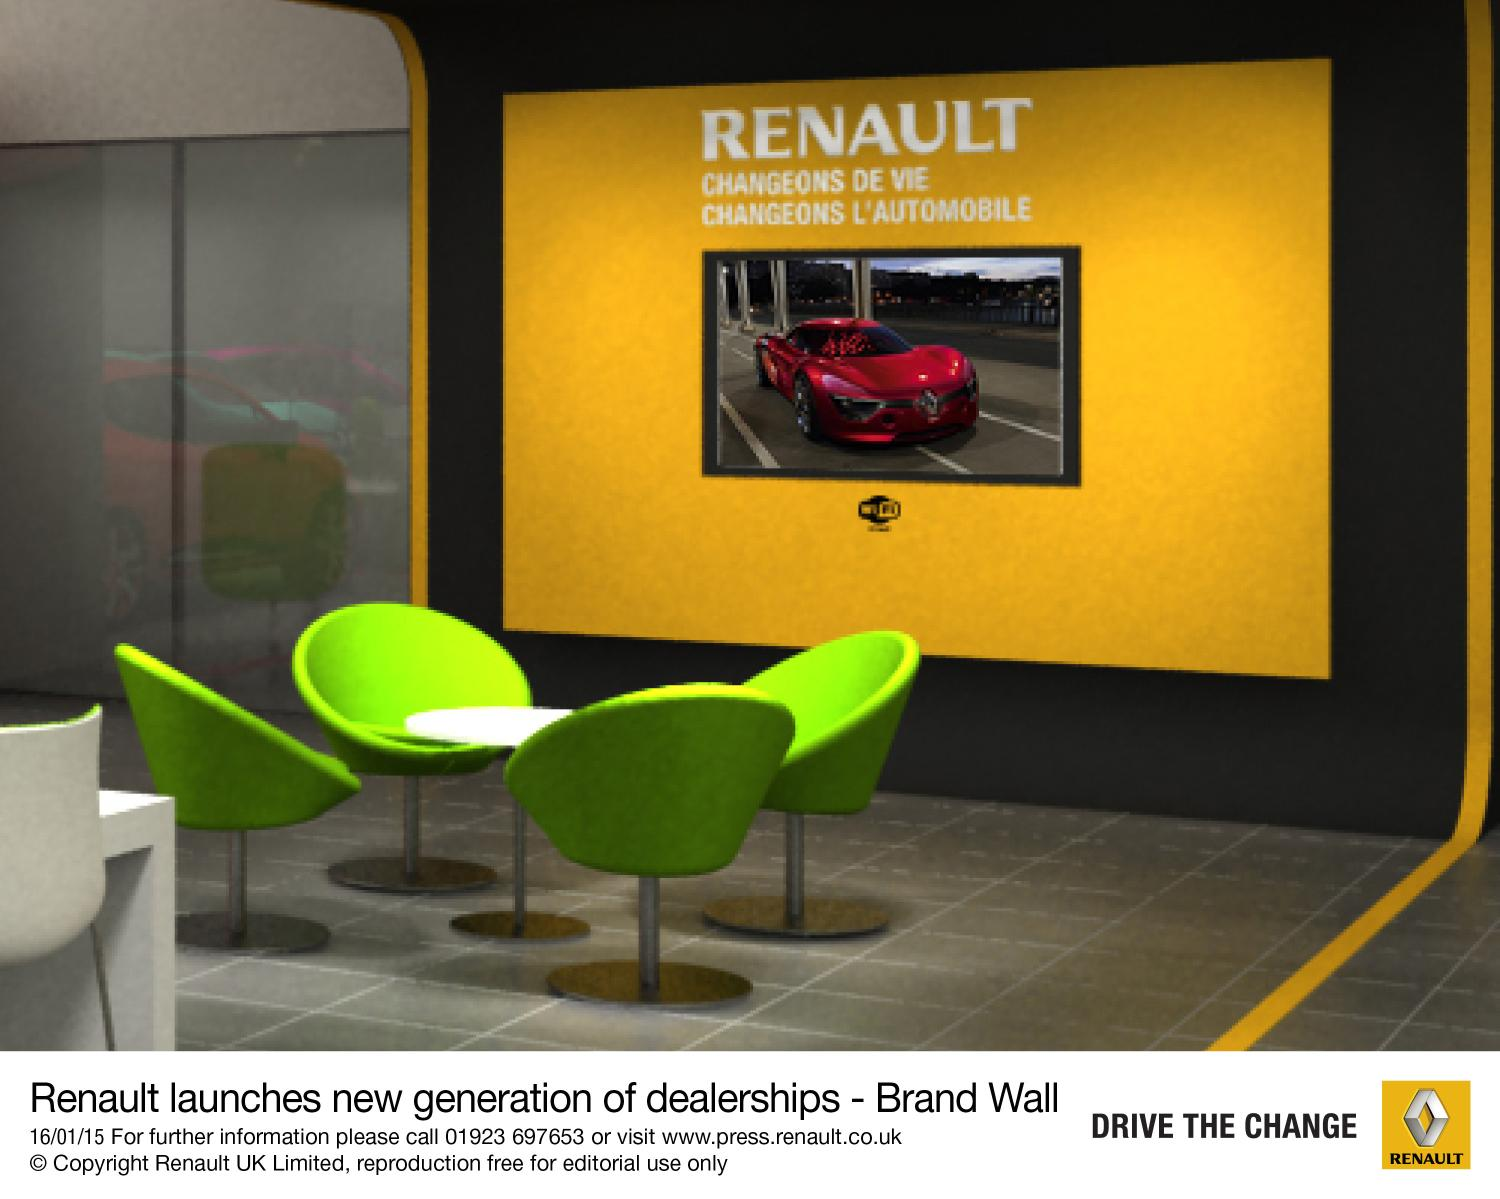 Renault Transforming Dealerships To Express New Identity